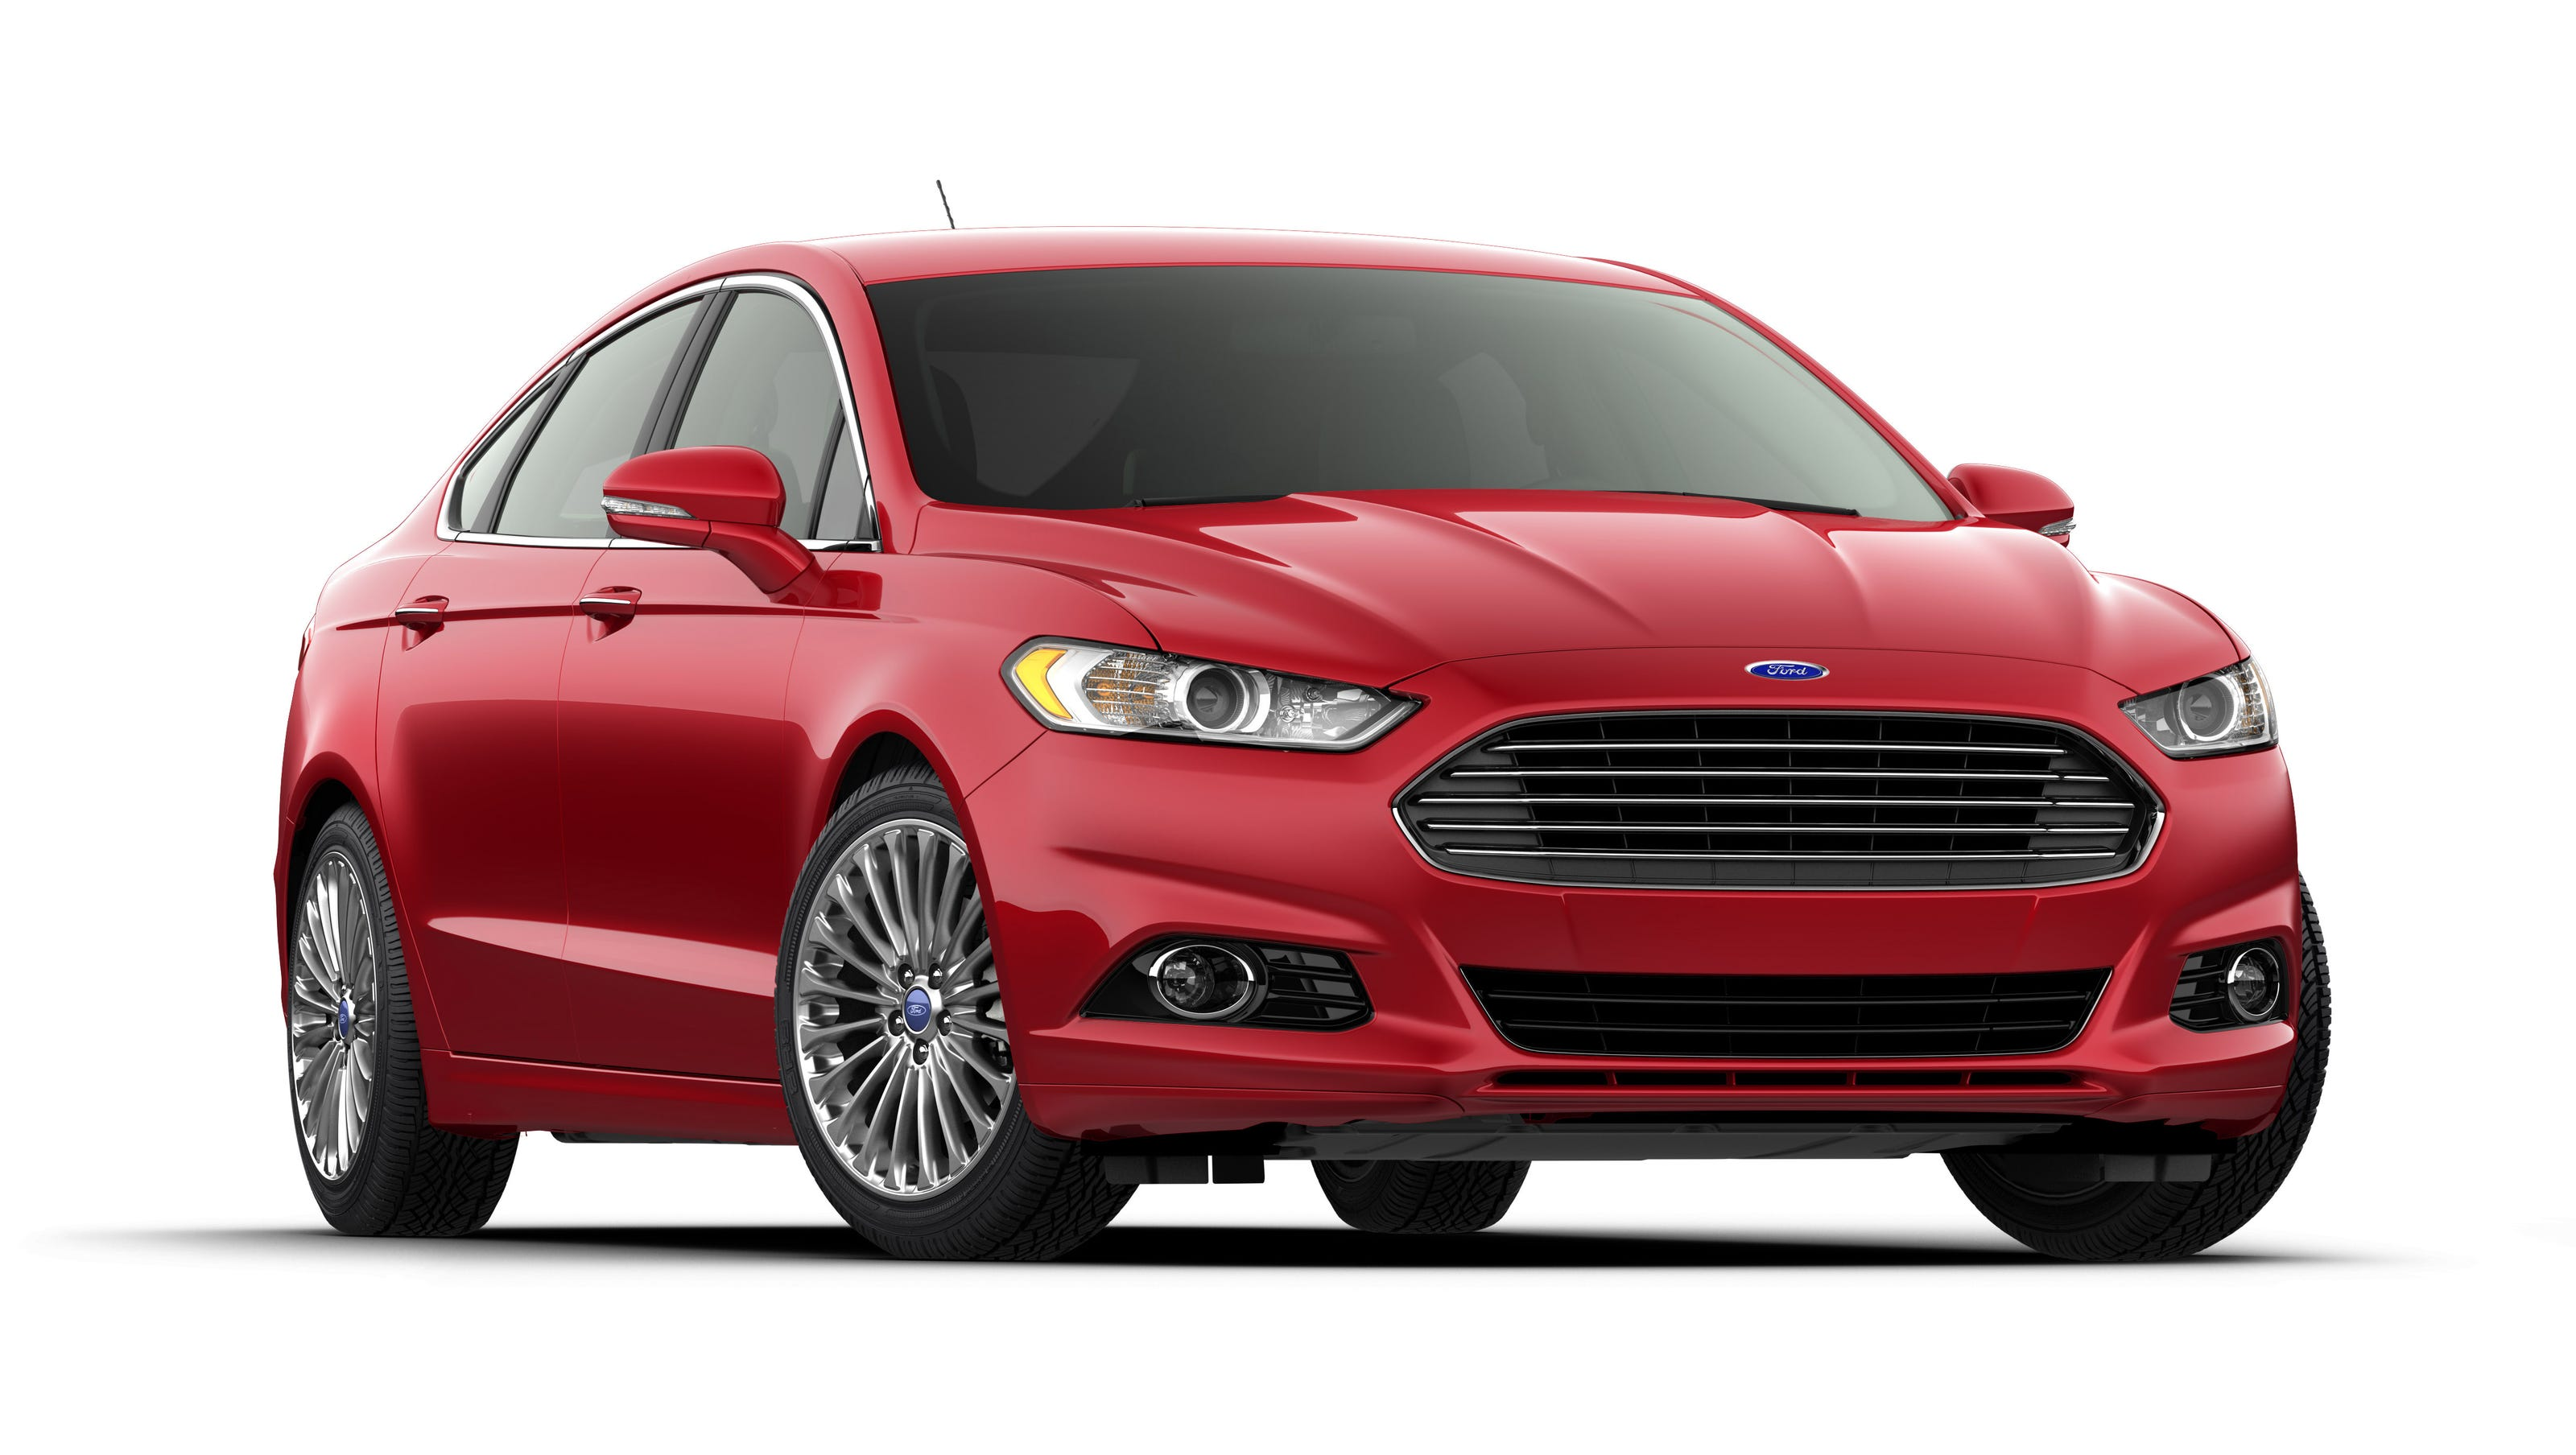 10 Times Ford Steering Wheels Came Loose Or Off Causing Massive Recall